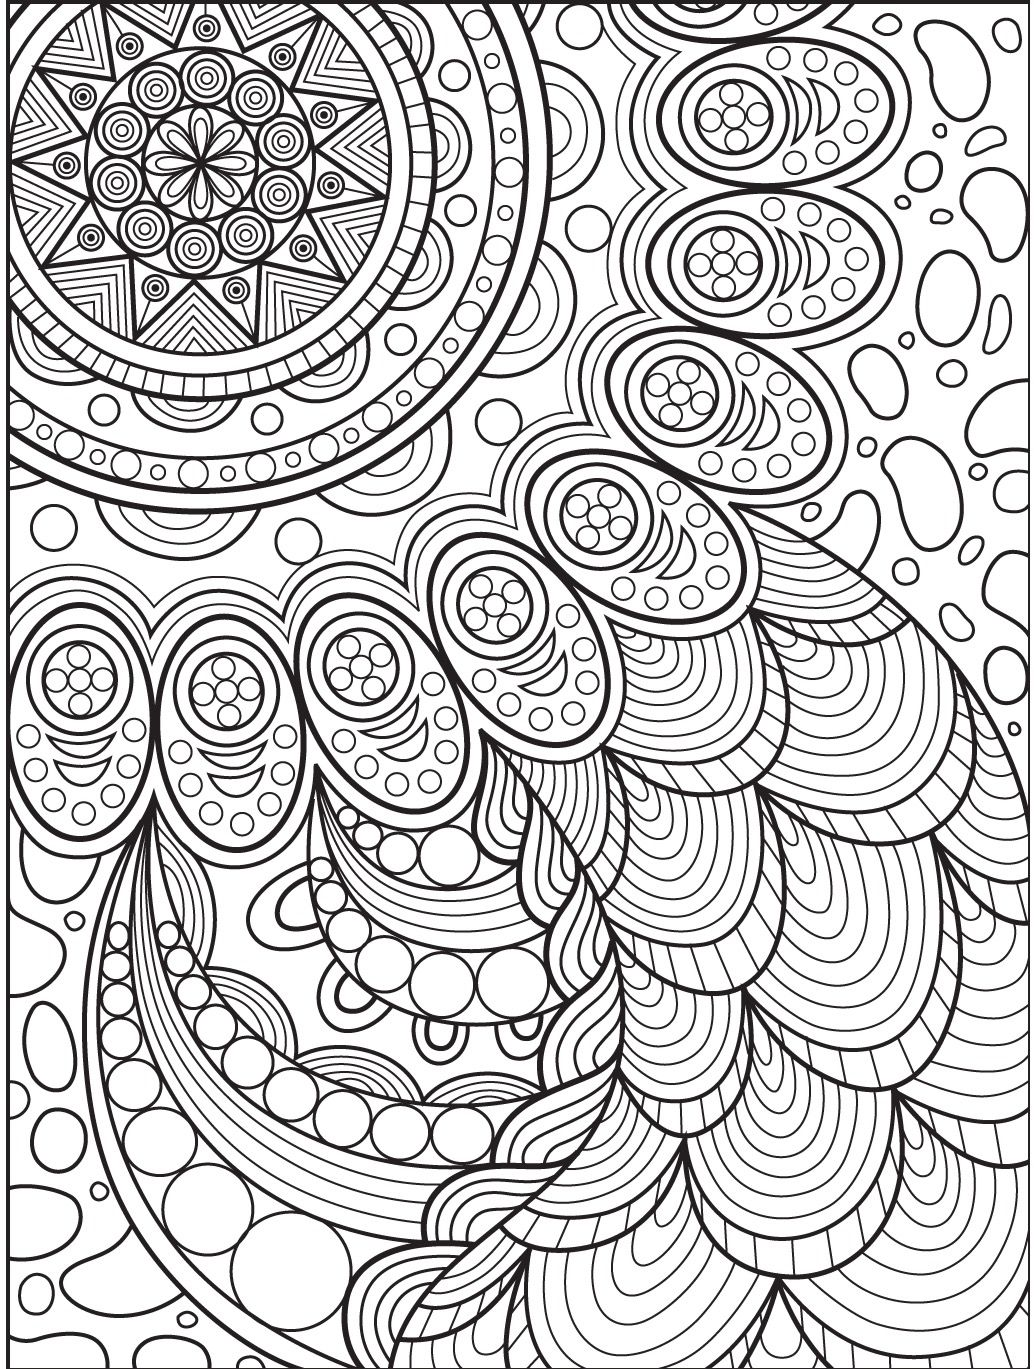 Abstract Coloring Page On Colorish Coloring Book App For Adults By